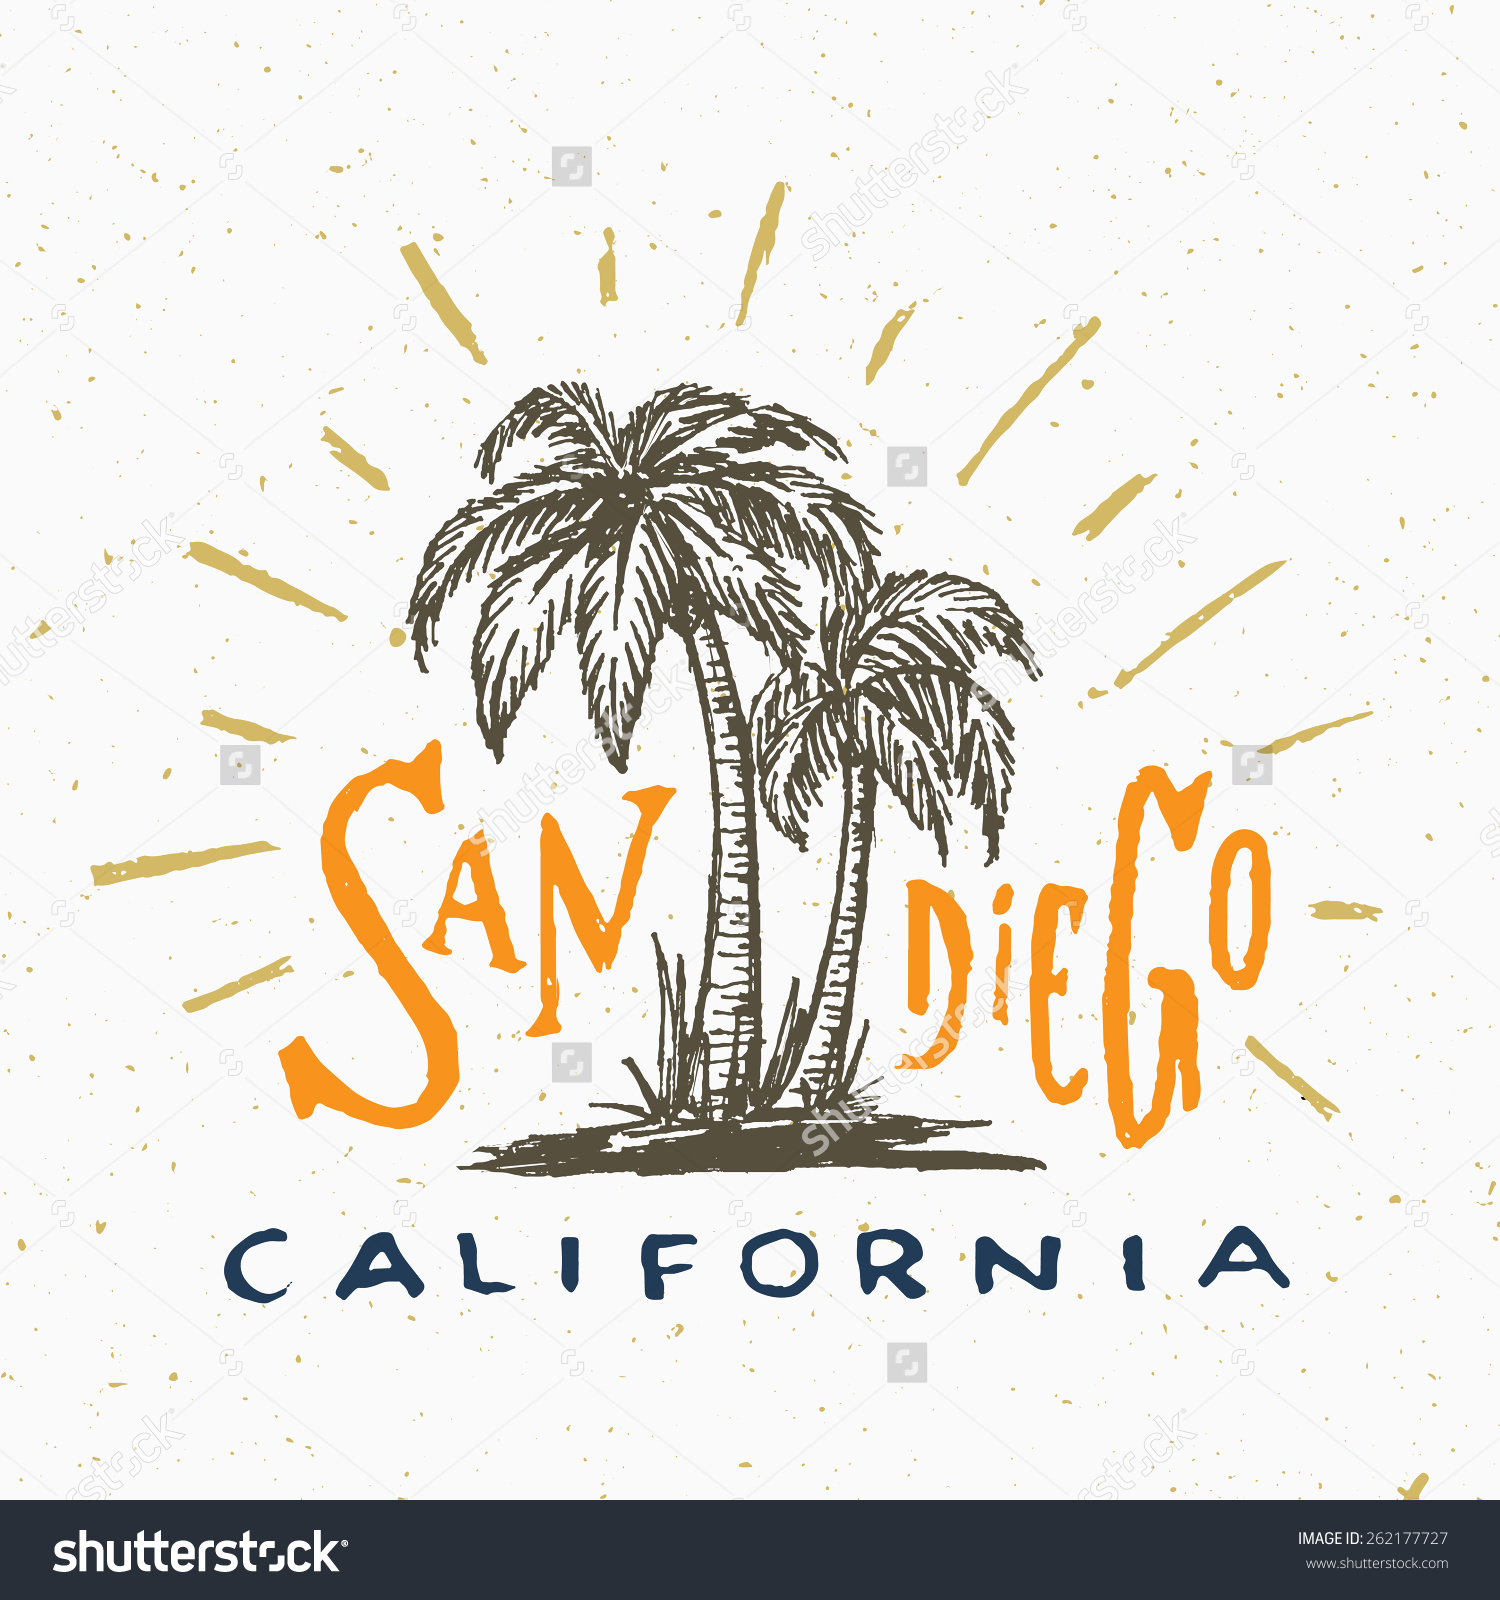 San Diego California T Shirt Graphic Stock Vector 262177727.